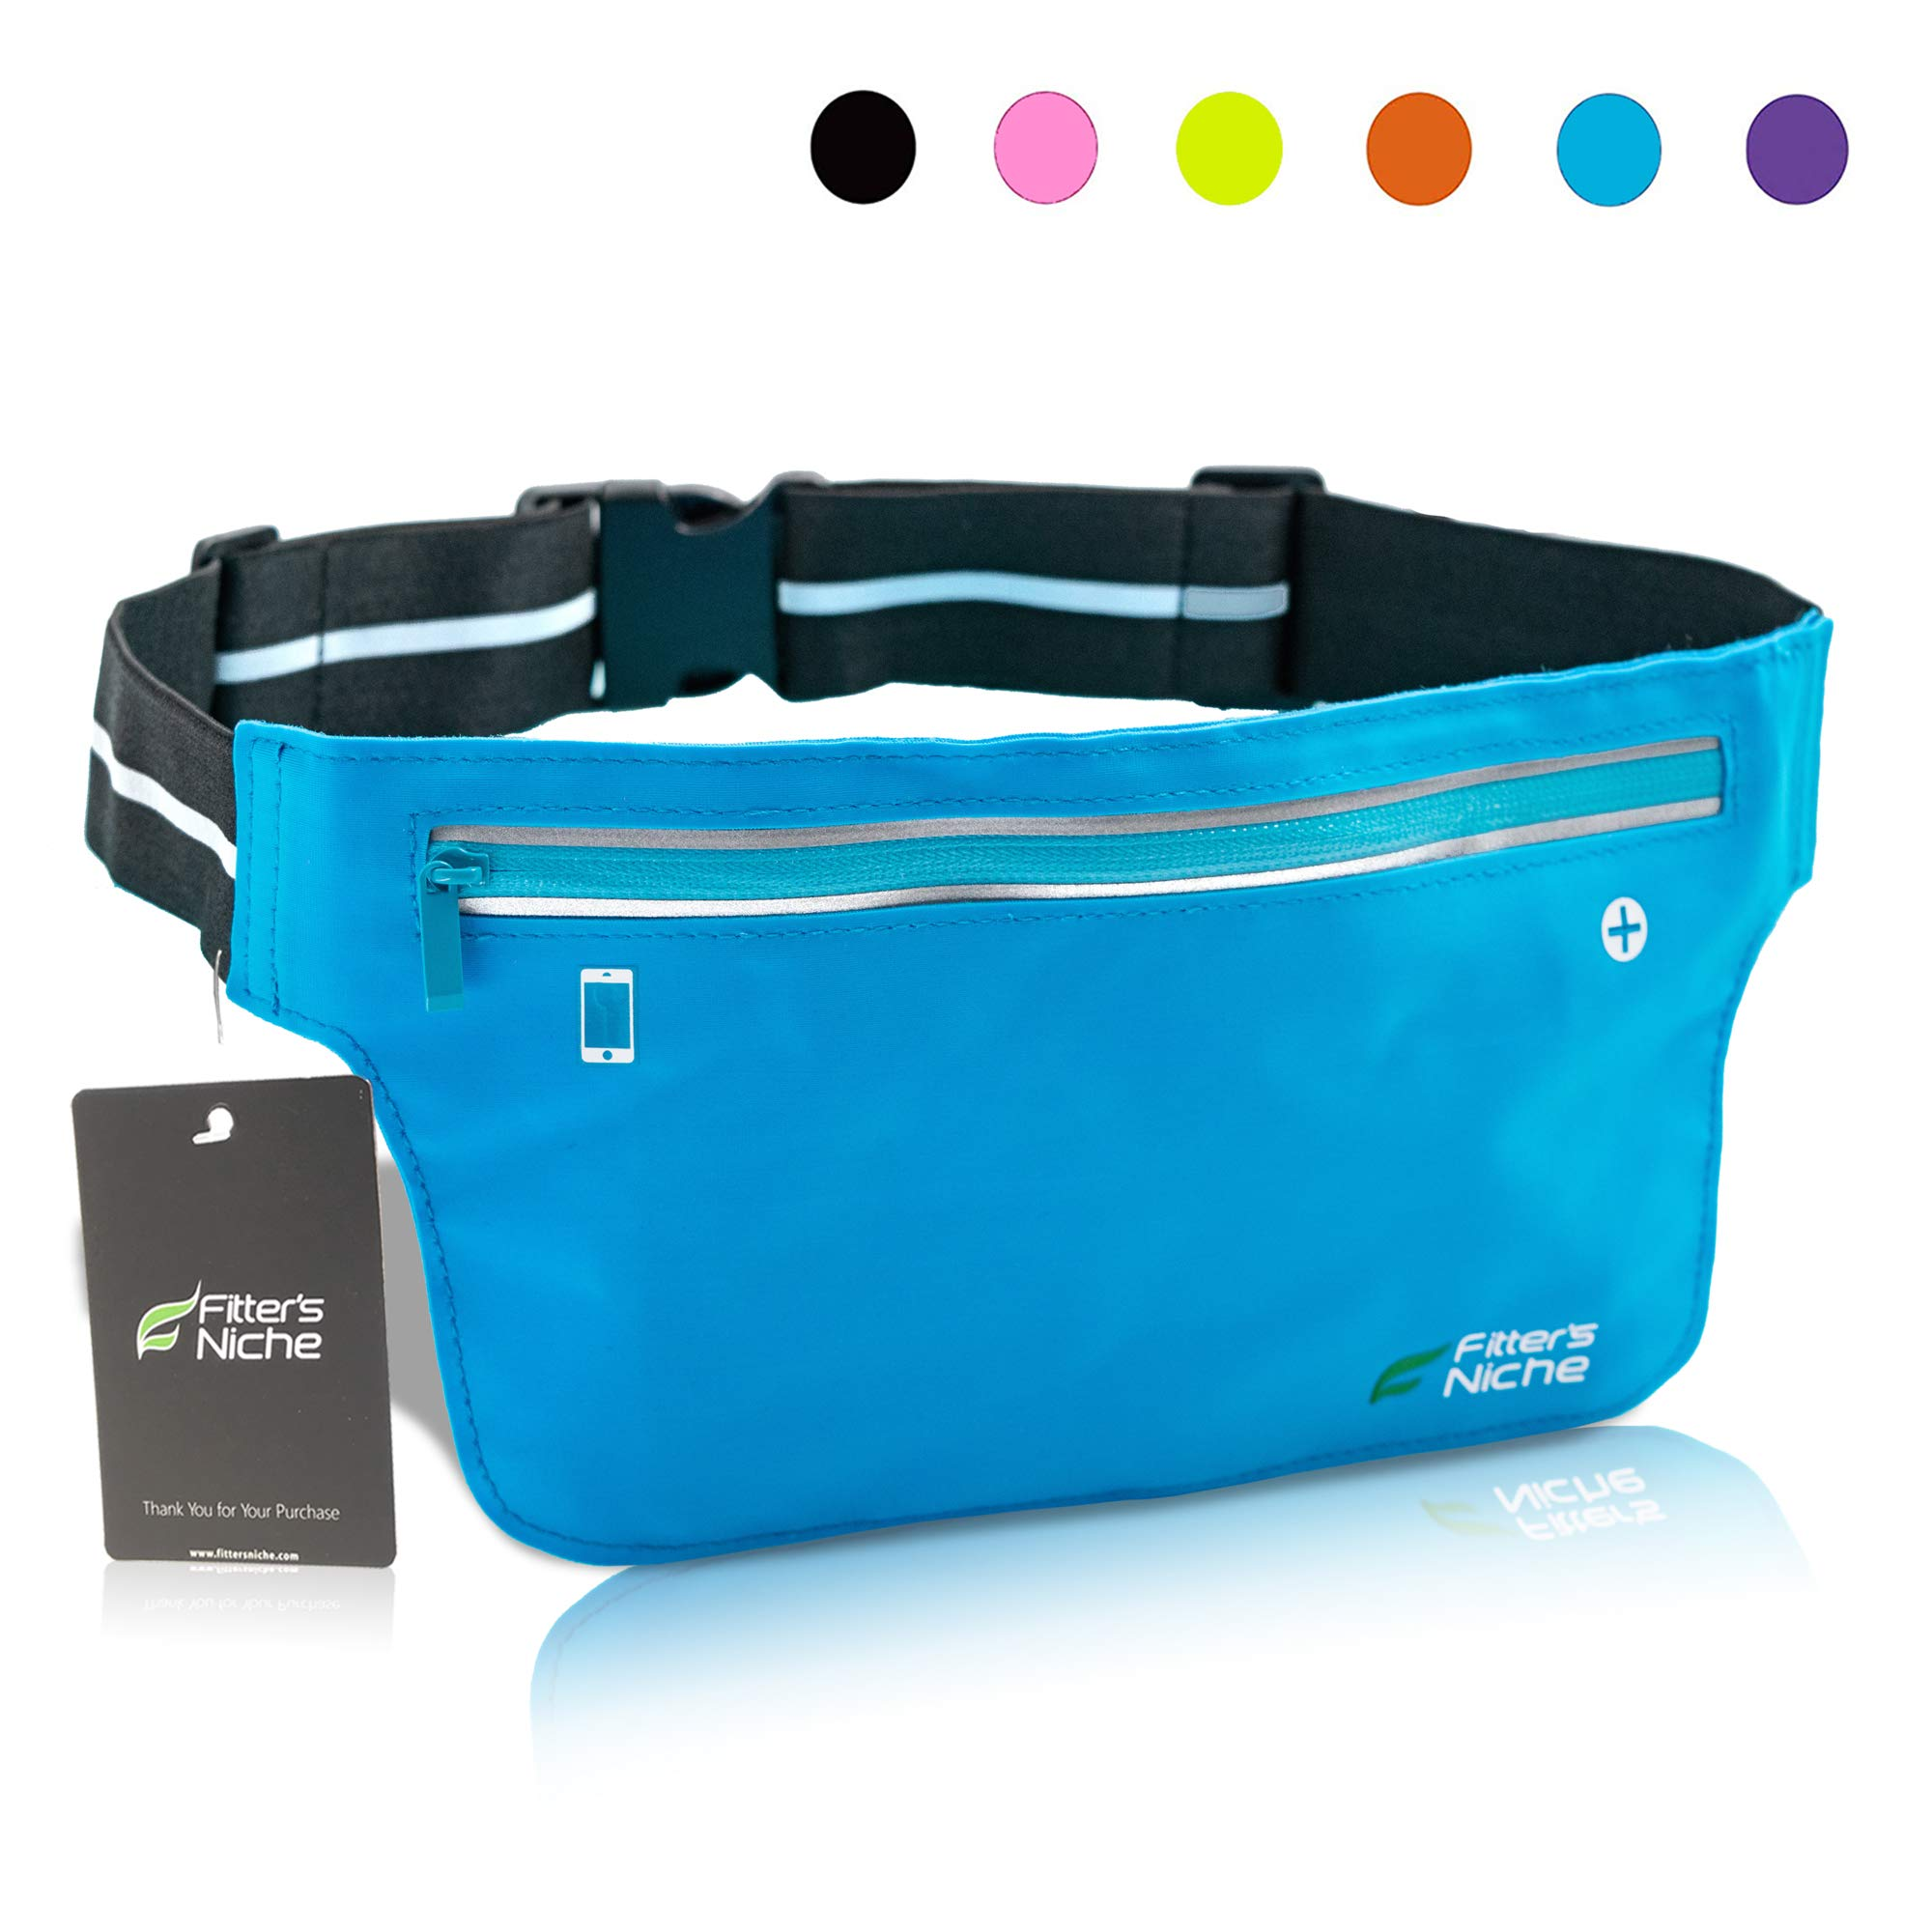 Ultra Slim Fanny Packs Running Belt, Water Resistant Lightweight Phone Holder Fitness Workout Exercise Waist Pouch Bag for iPhone X XS 8 Samsung Note in Biking Walking Hiking Gym Sports by fitter's niche